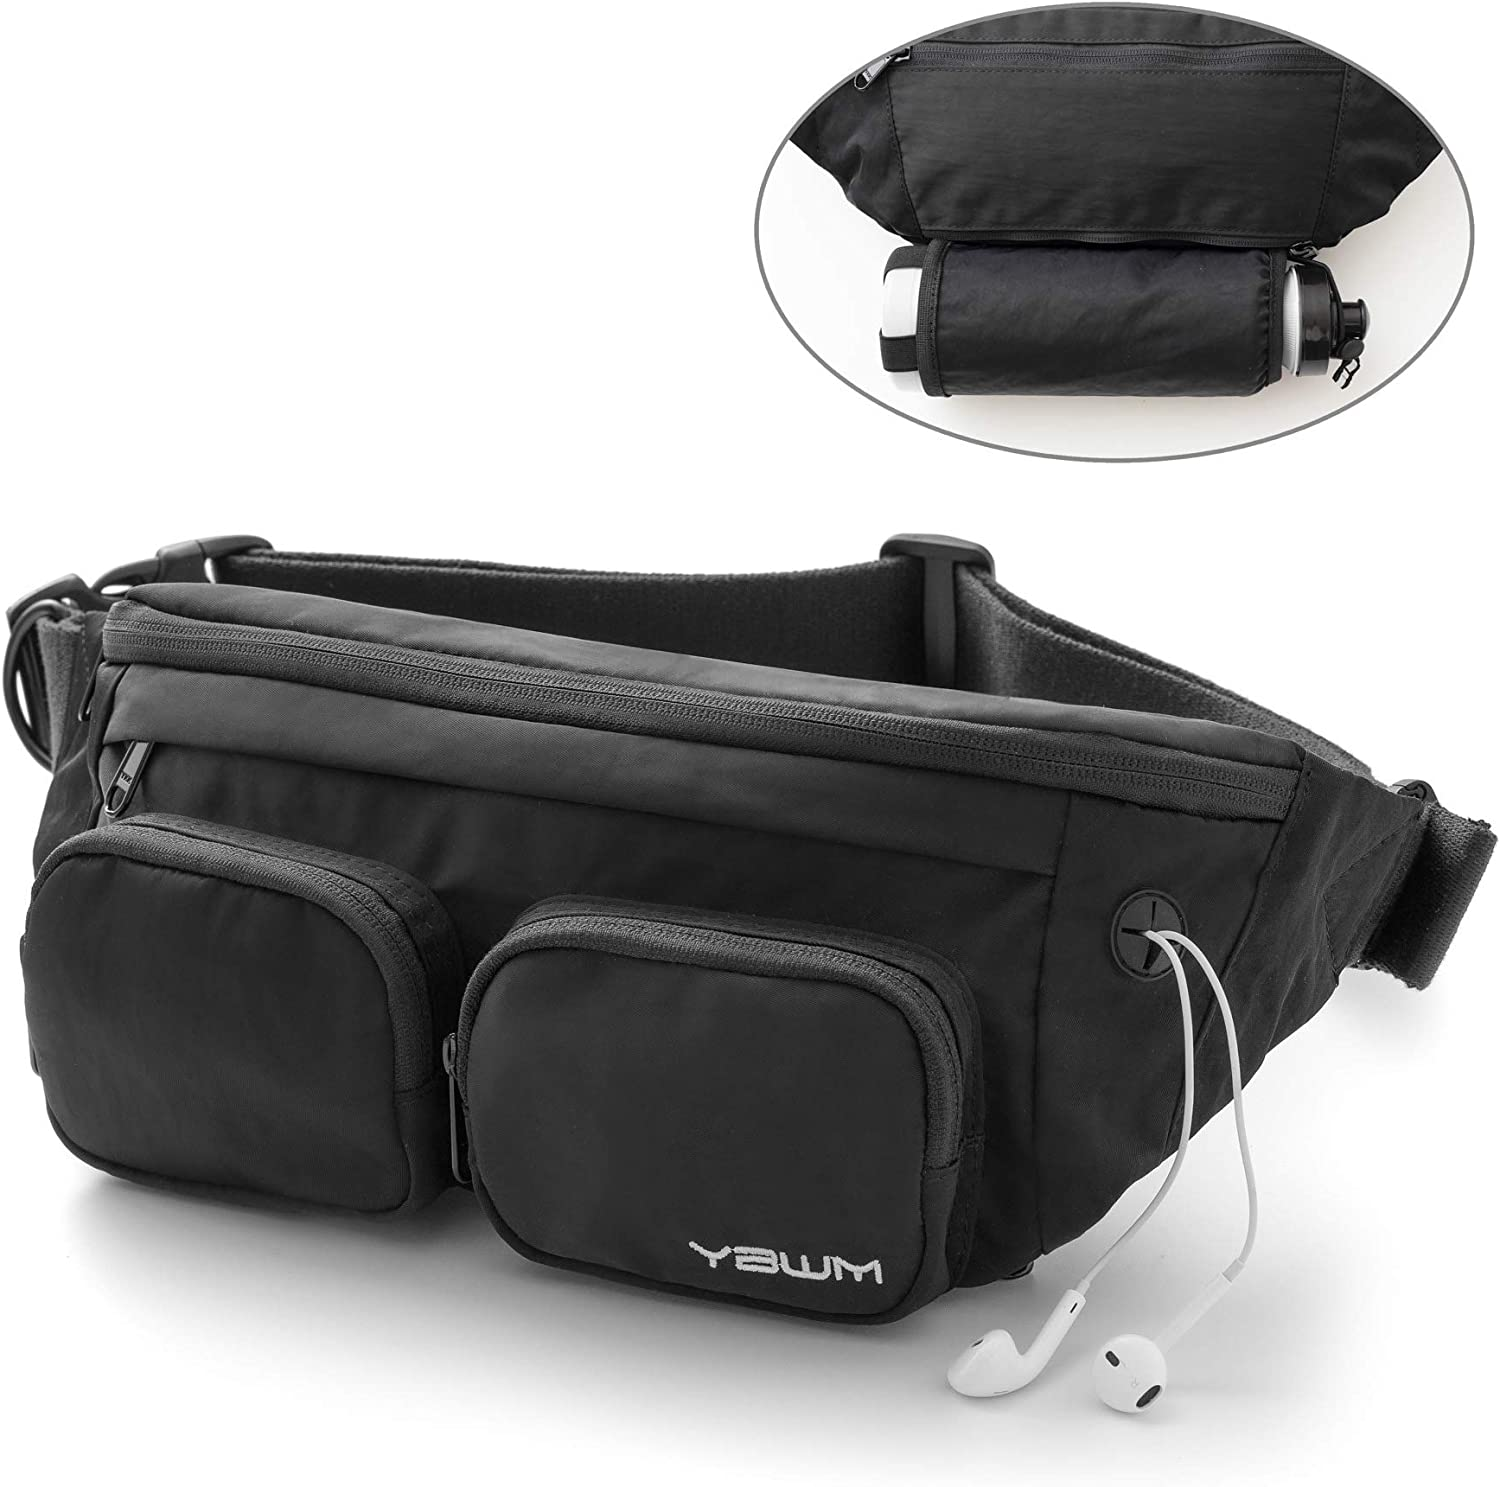 YBWM Multipurpose Waist Bag for Women Mens Fanny Packs Hip Bum Bag Expandable Waterproof Waist Pack with Water Bottle Holder for Casual Running Hiking Camping Cycling Dog Walking